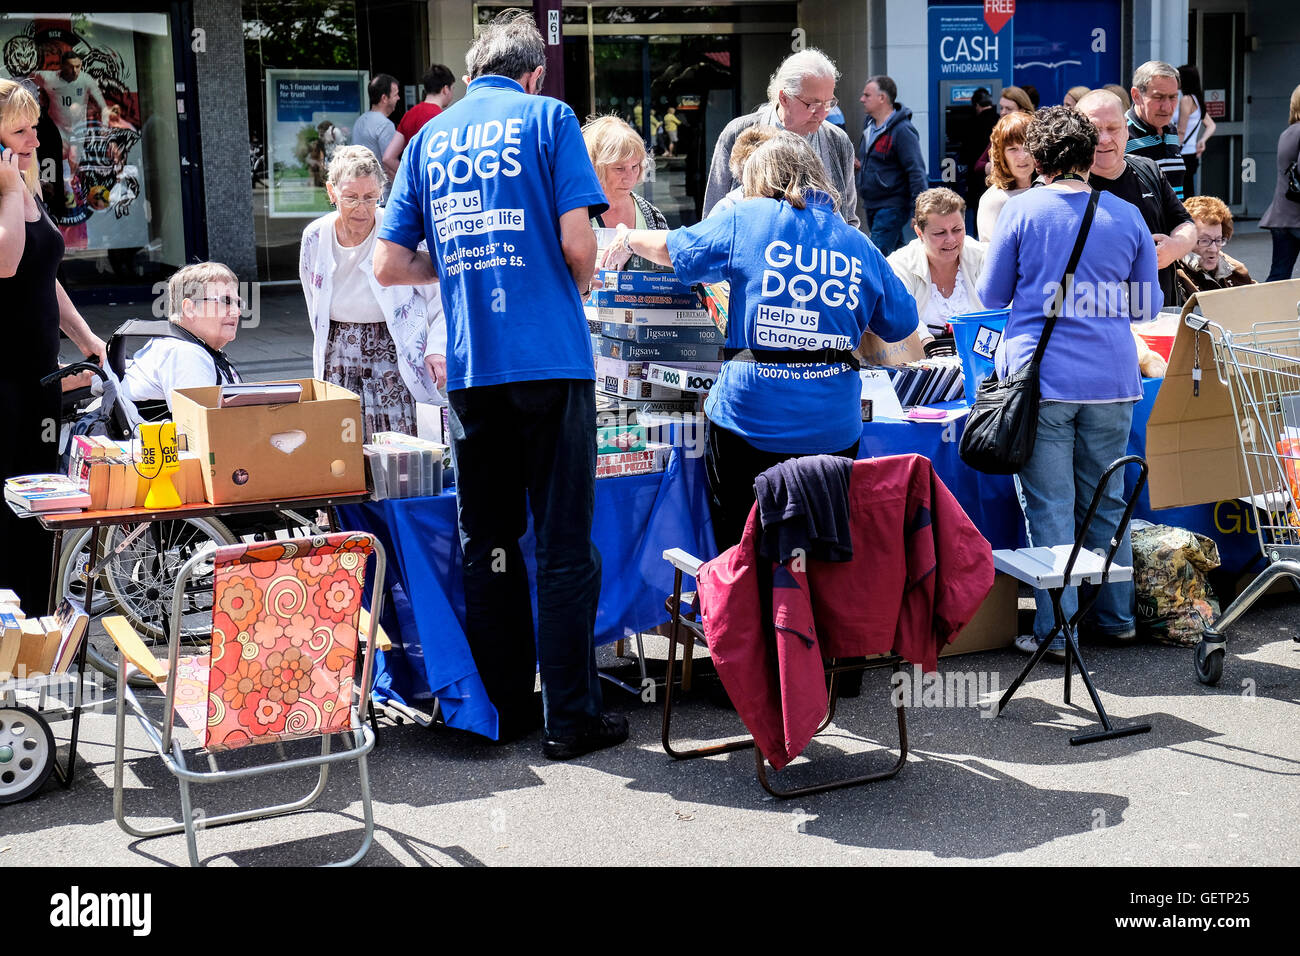 Volunteers raising funds for Guide Dogs for the Blind. - Stock Image